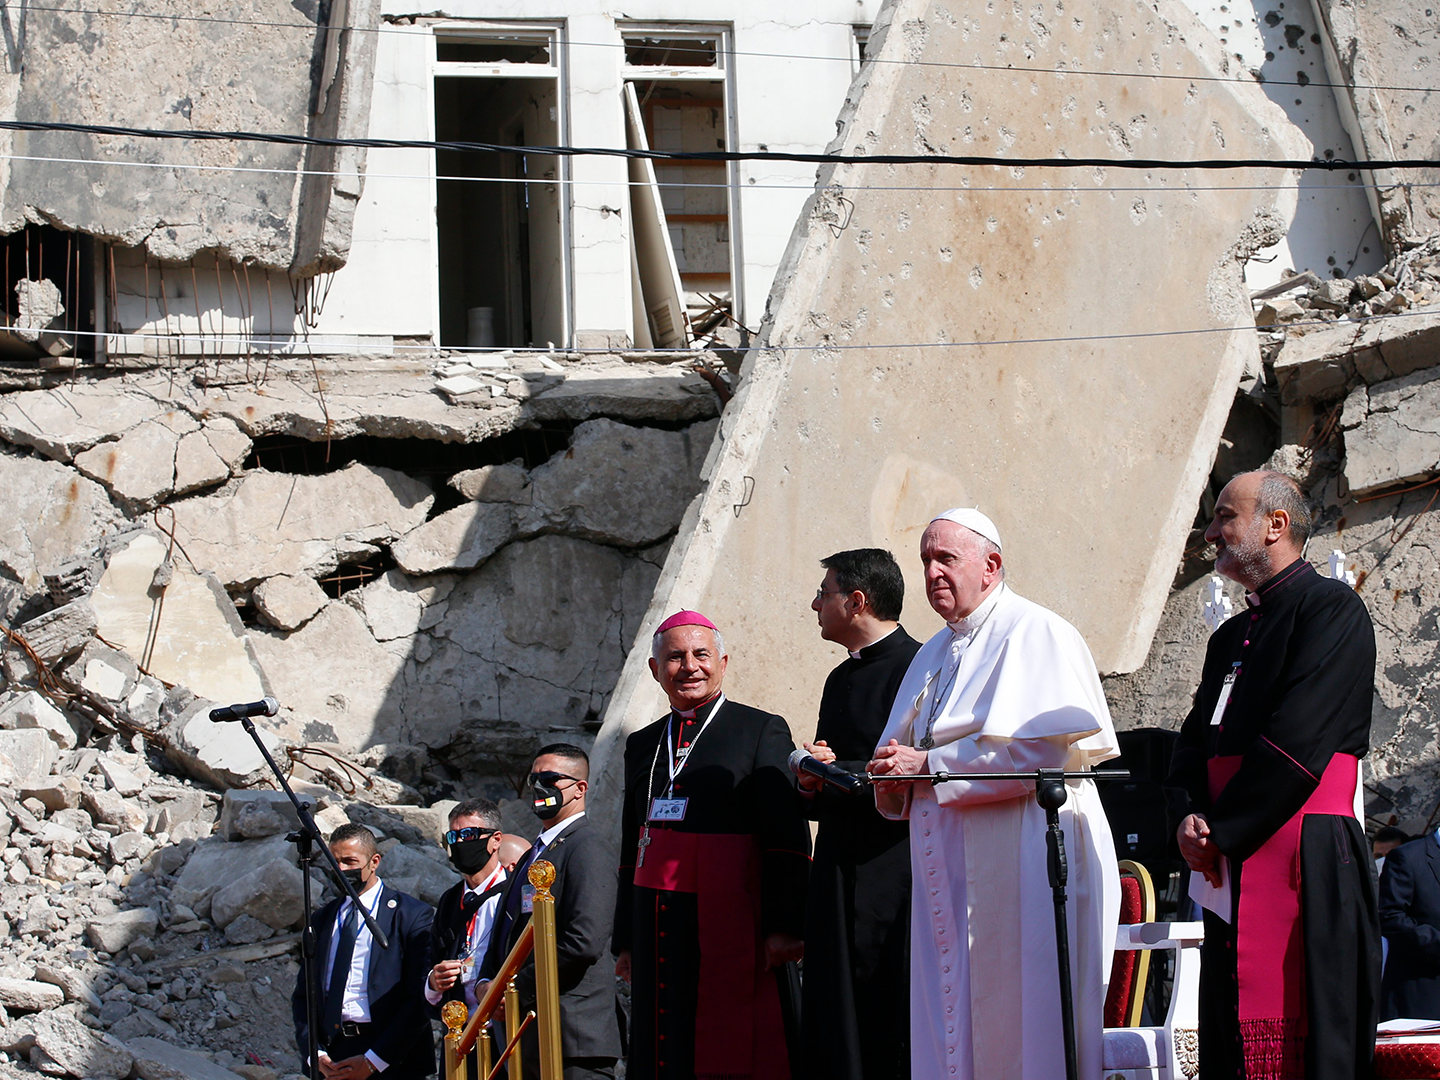 Pope Francis at Hosh al-Bieaa in Mosul, Iraq, March 7, 2021